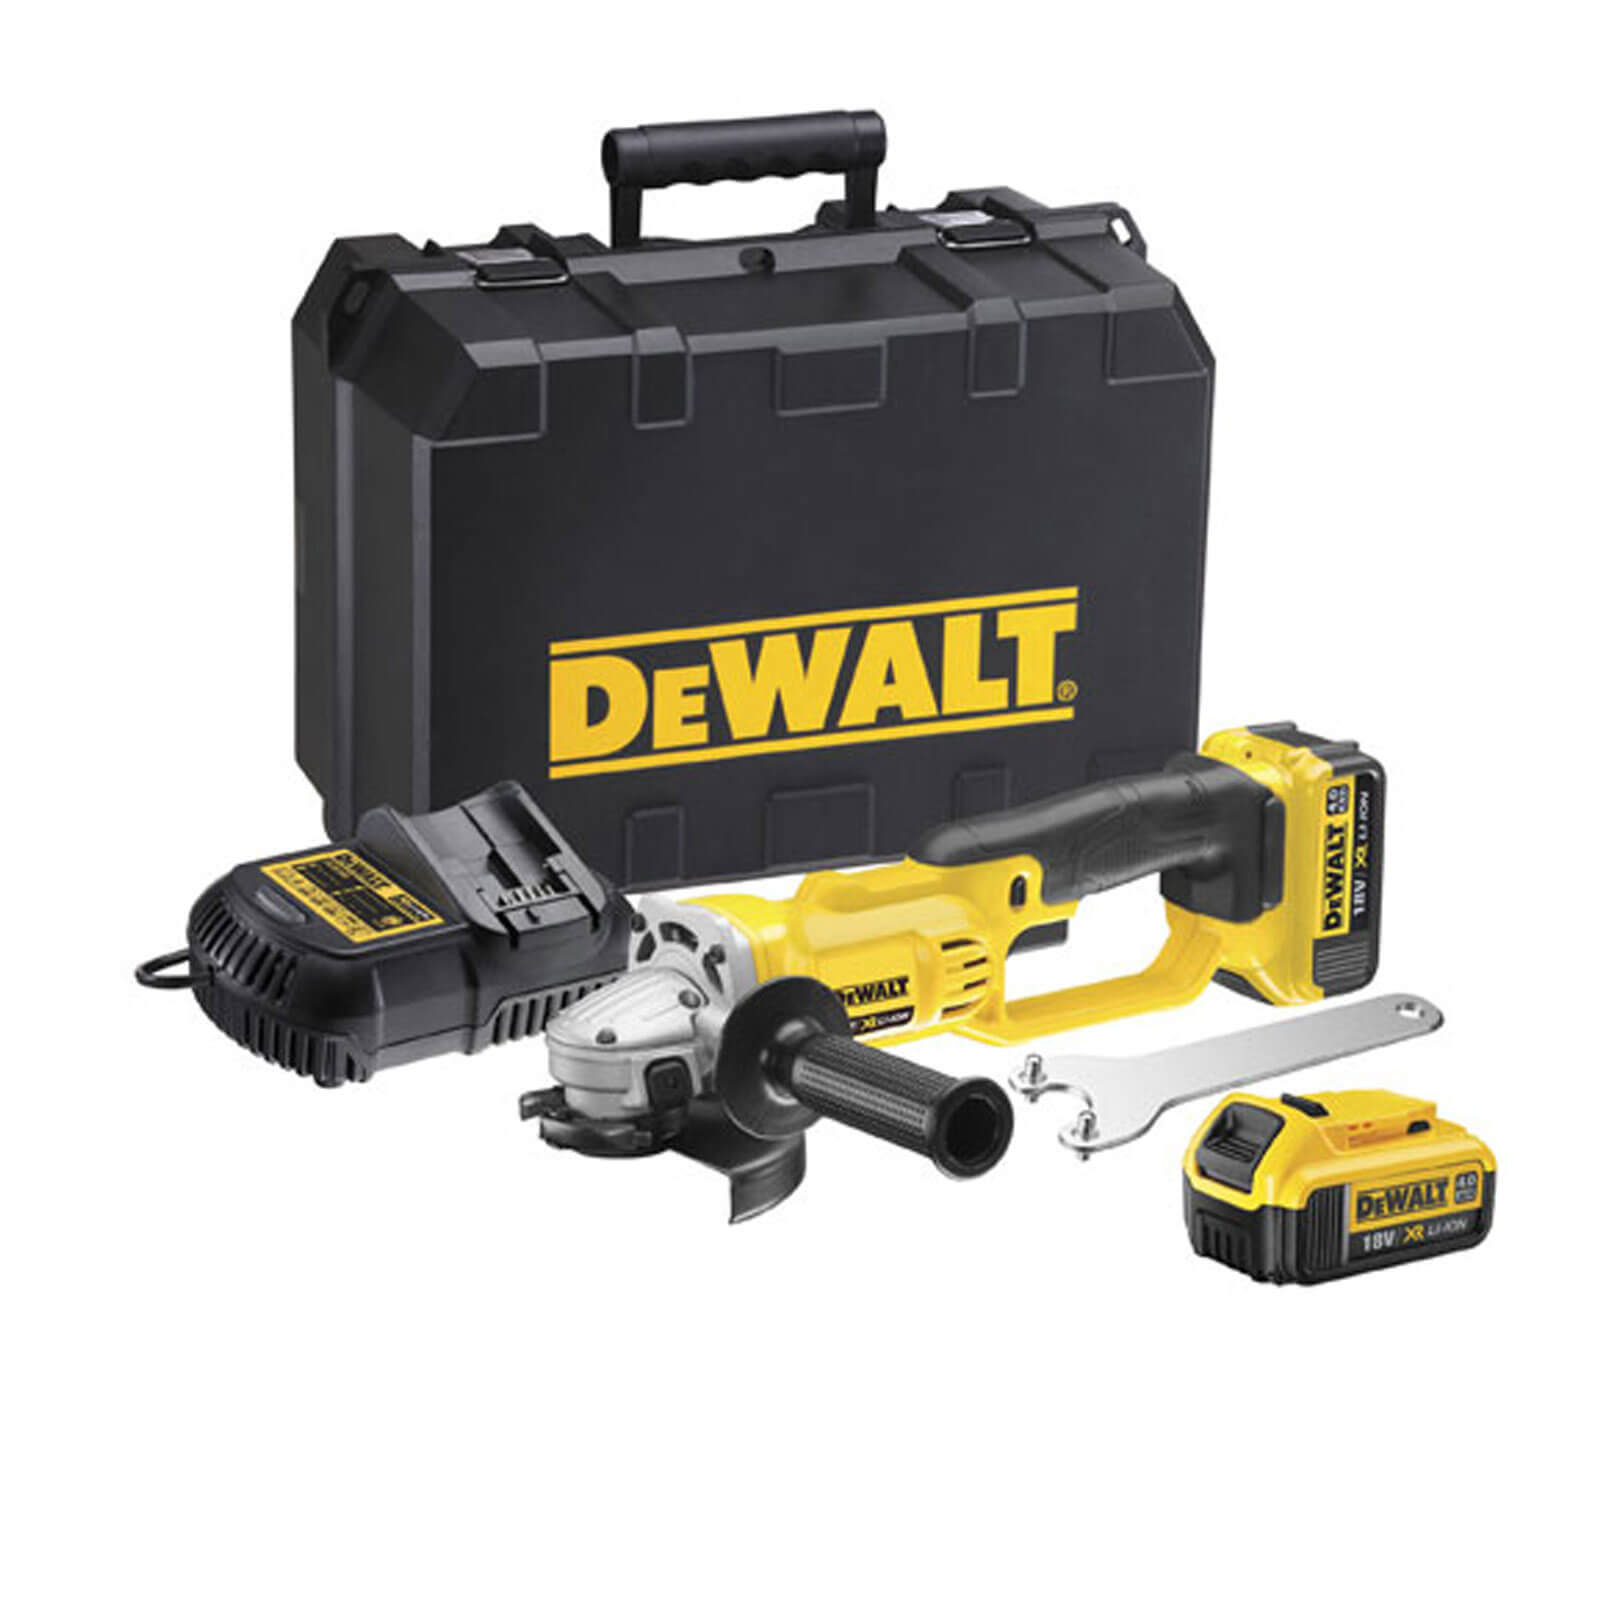 Image of DeWalt DCG412 18v XR Cordless Angle Grinder 125mm 2 x 4ah Li-ion Charger Case